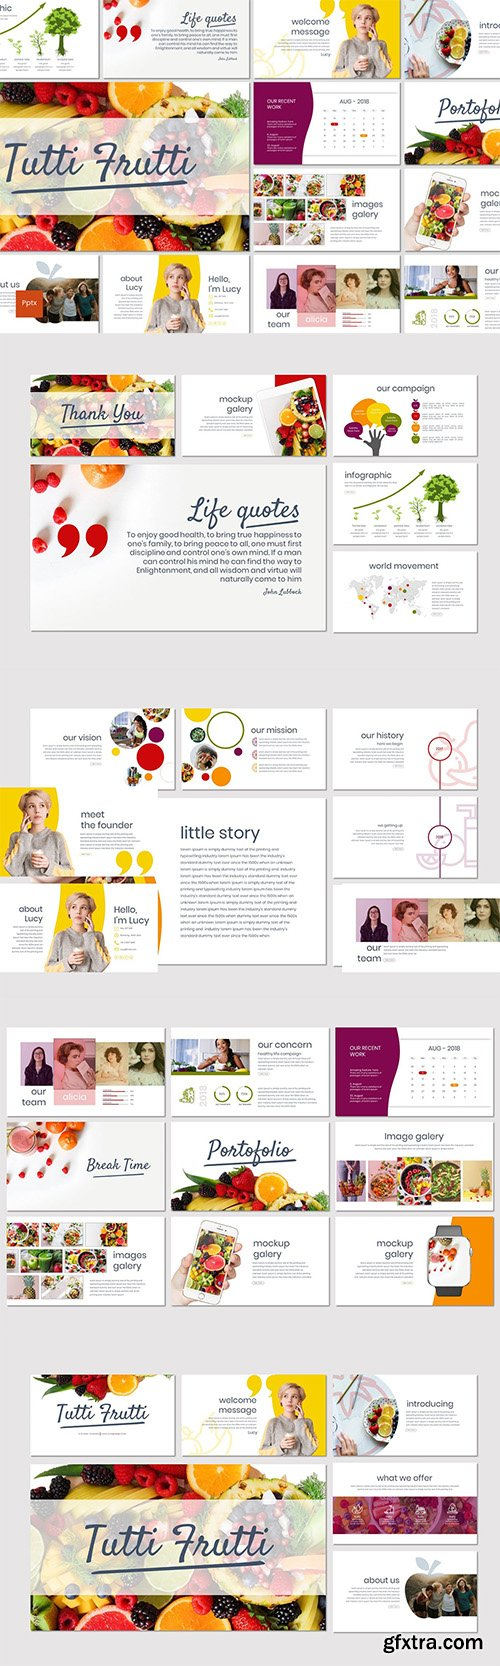 Tutti Frutti - Powerpoint Keynote and Google Slides Templates